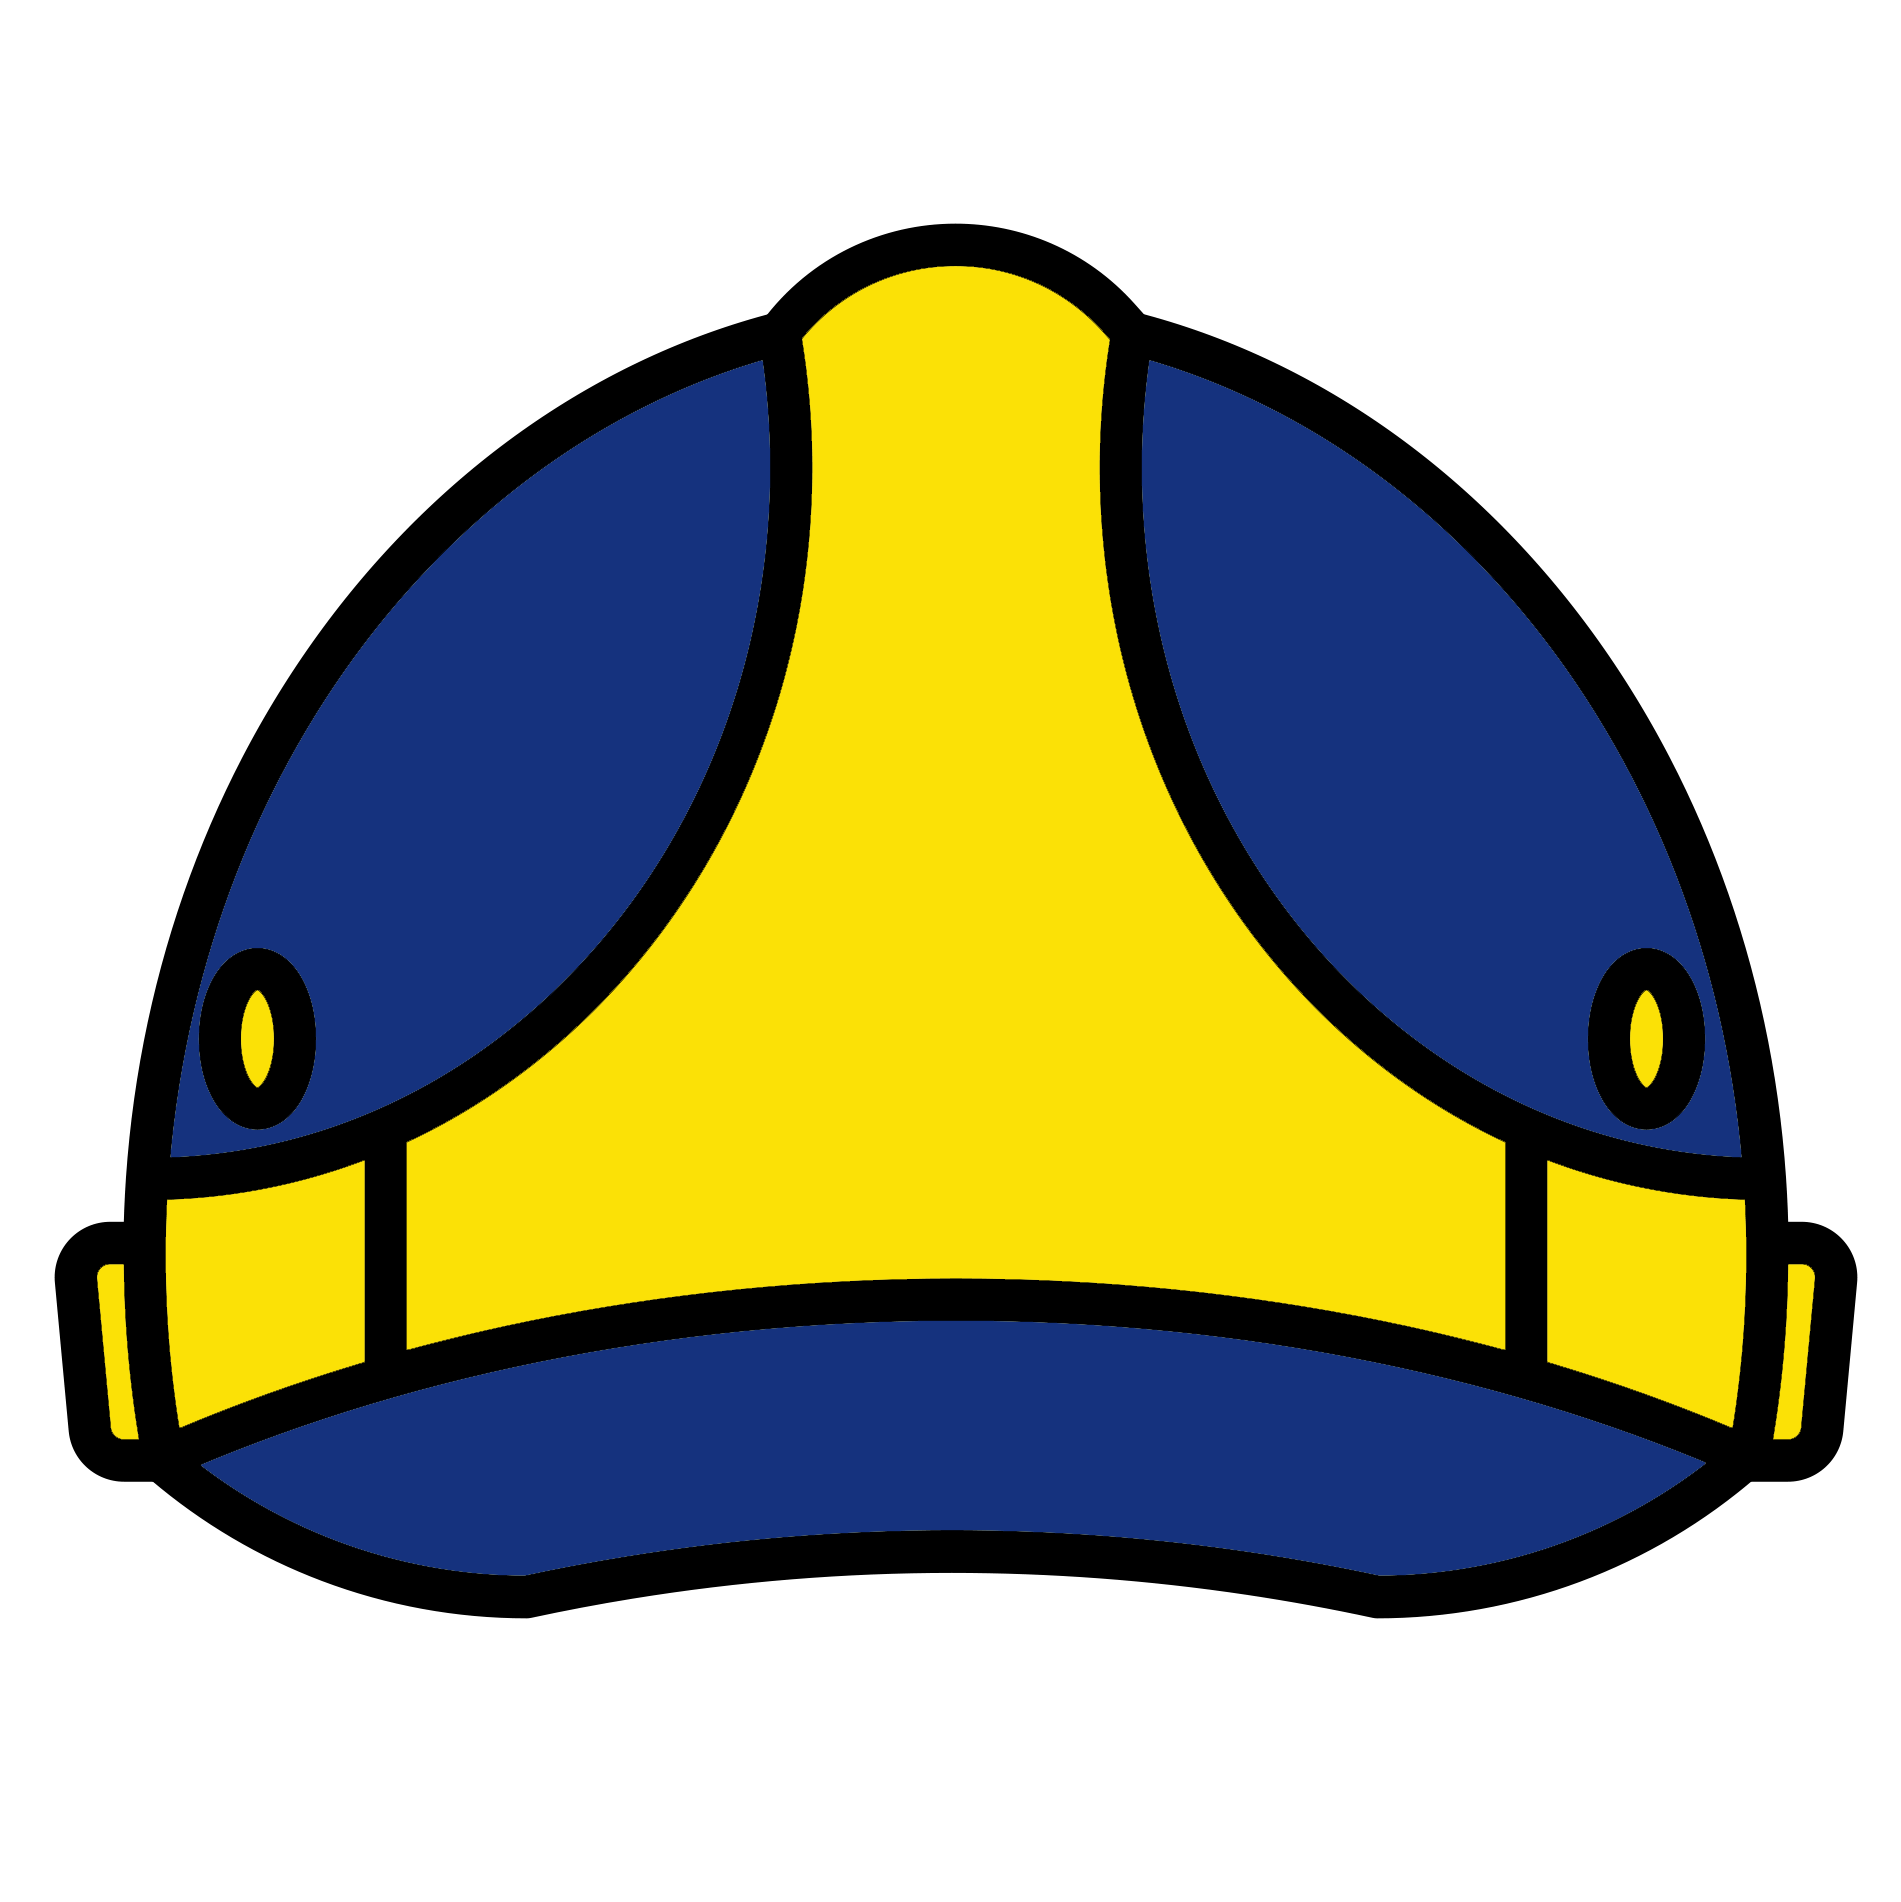 Blue and Yellow graphic of a saftey helmet